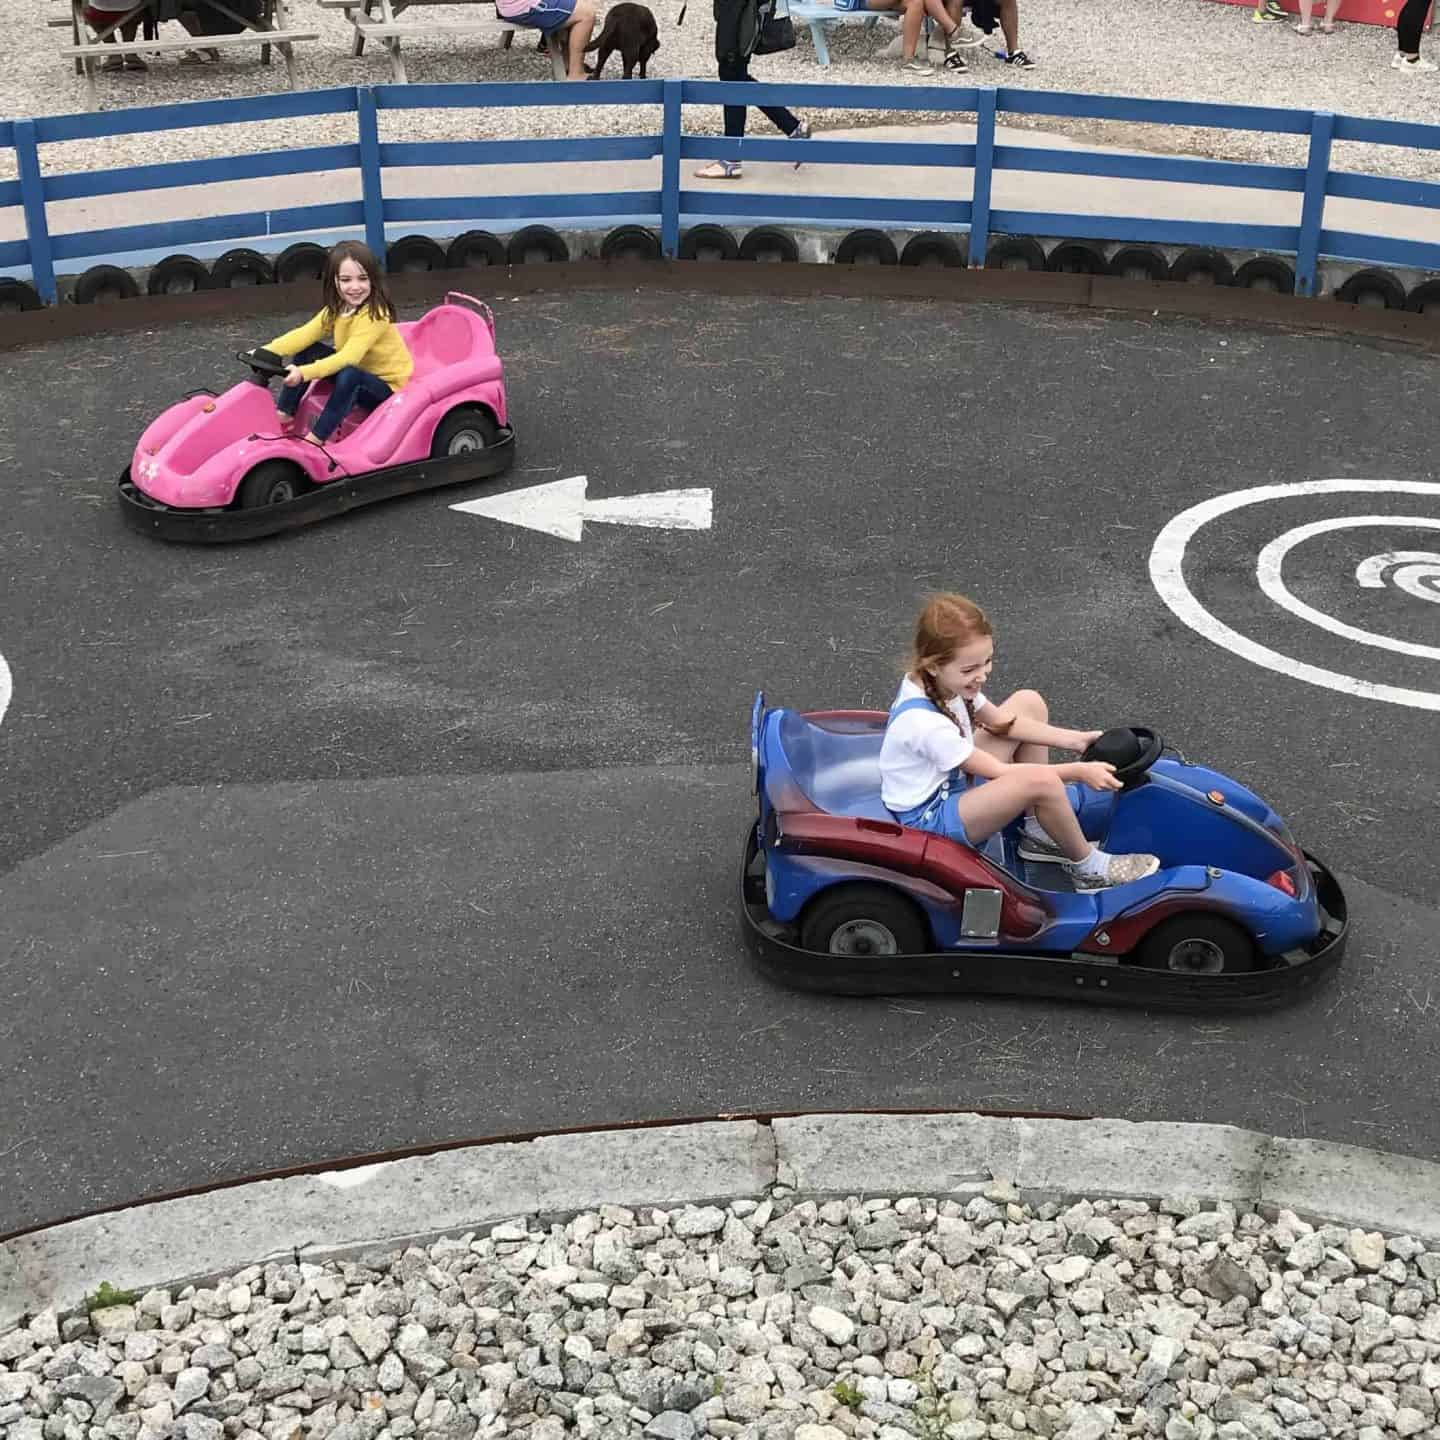 Go carts at Holywell Bay Fun Park, Cornwall